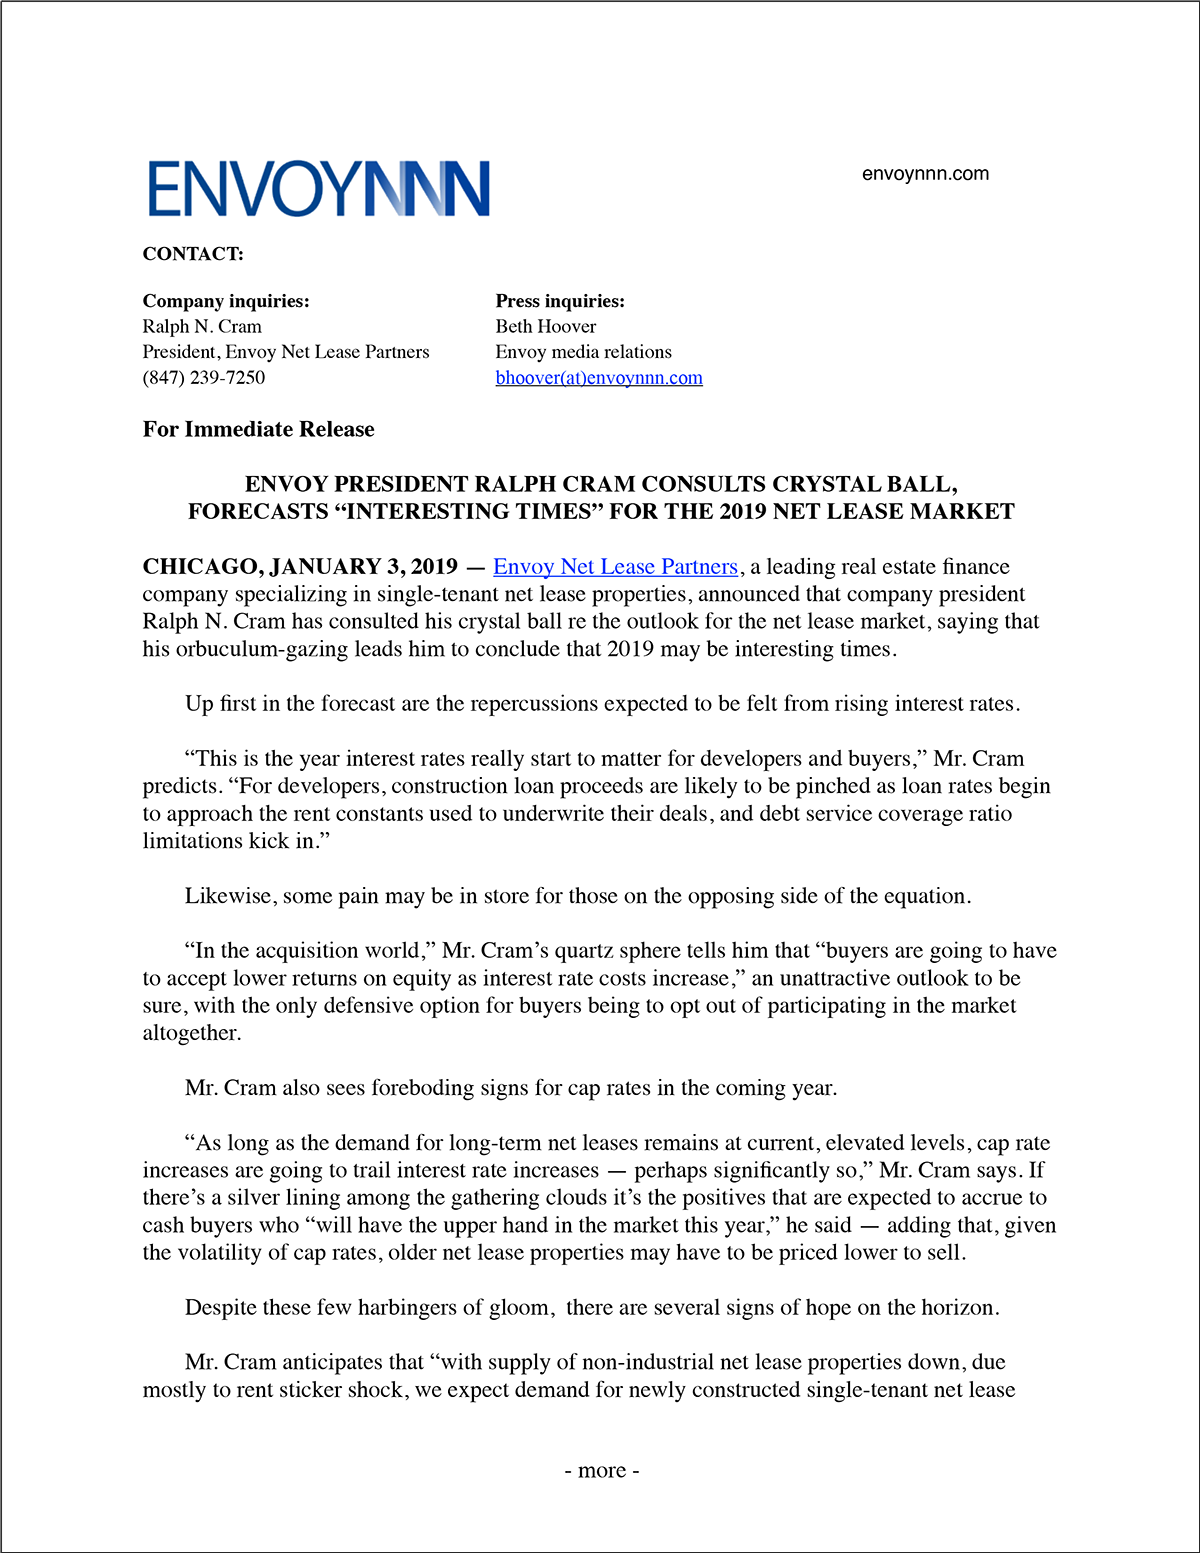 Envoy Outlook Release for 2019.png